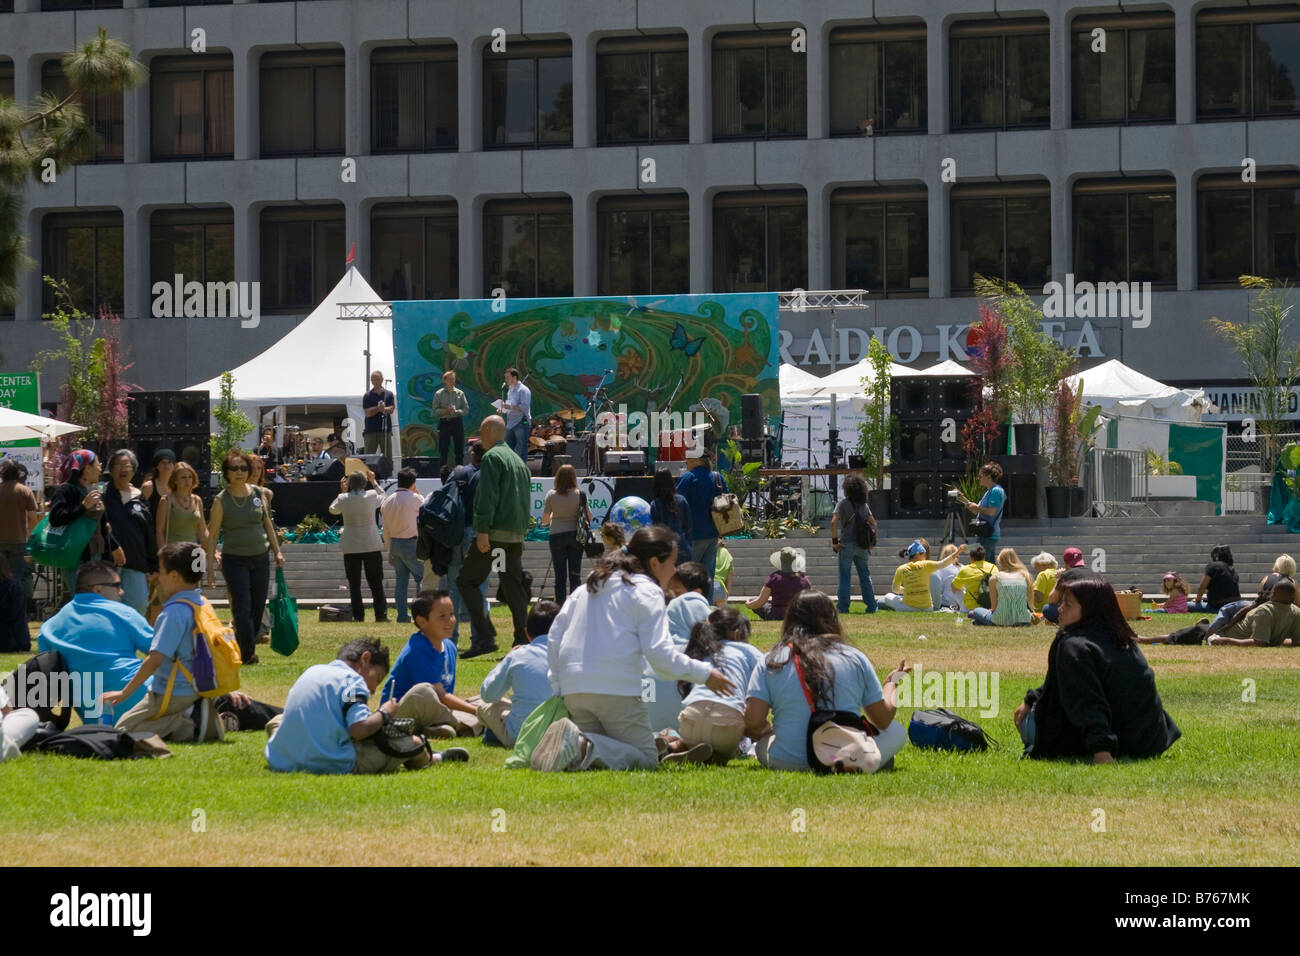 Earth Day, April 22, 2008. Wilshire Boulevard, Los Angeles, California, USA - Stock Image